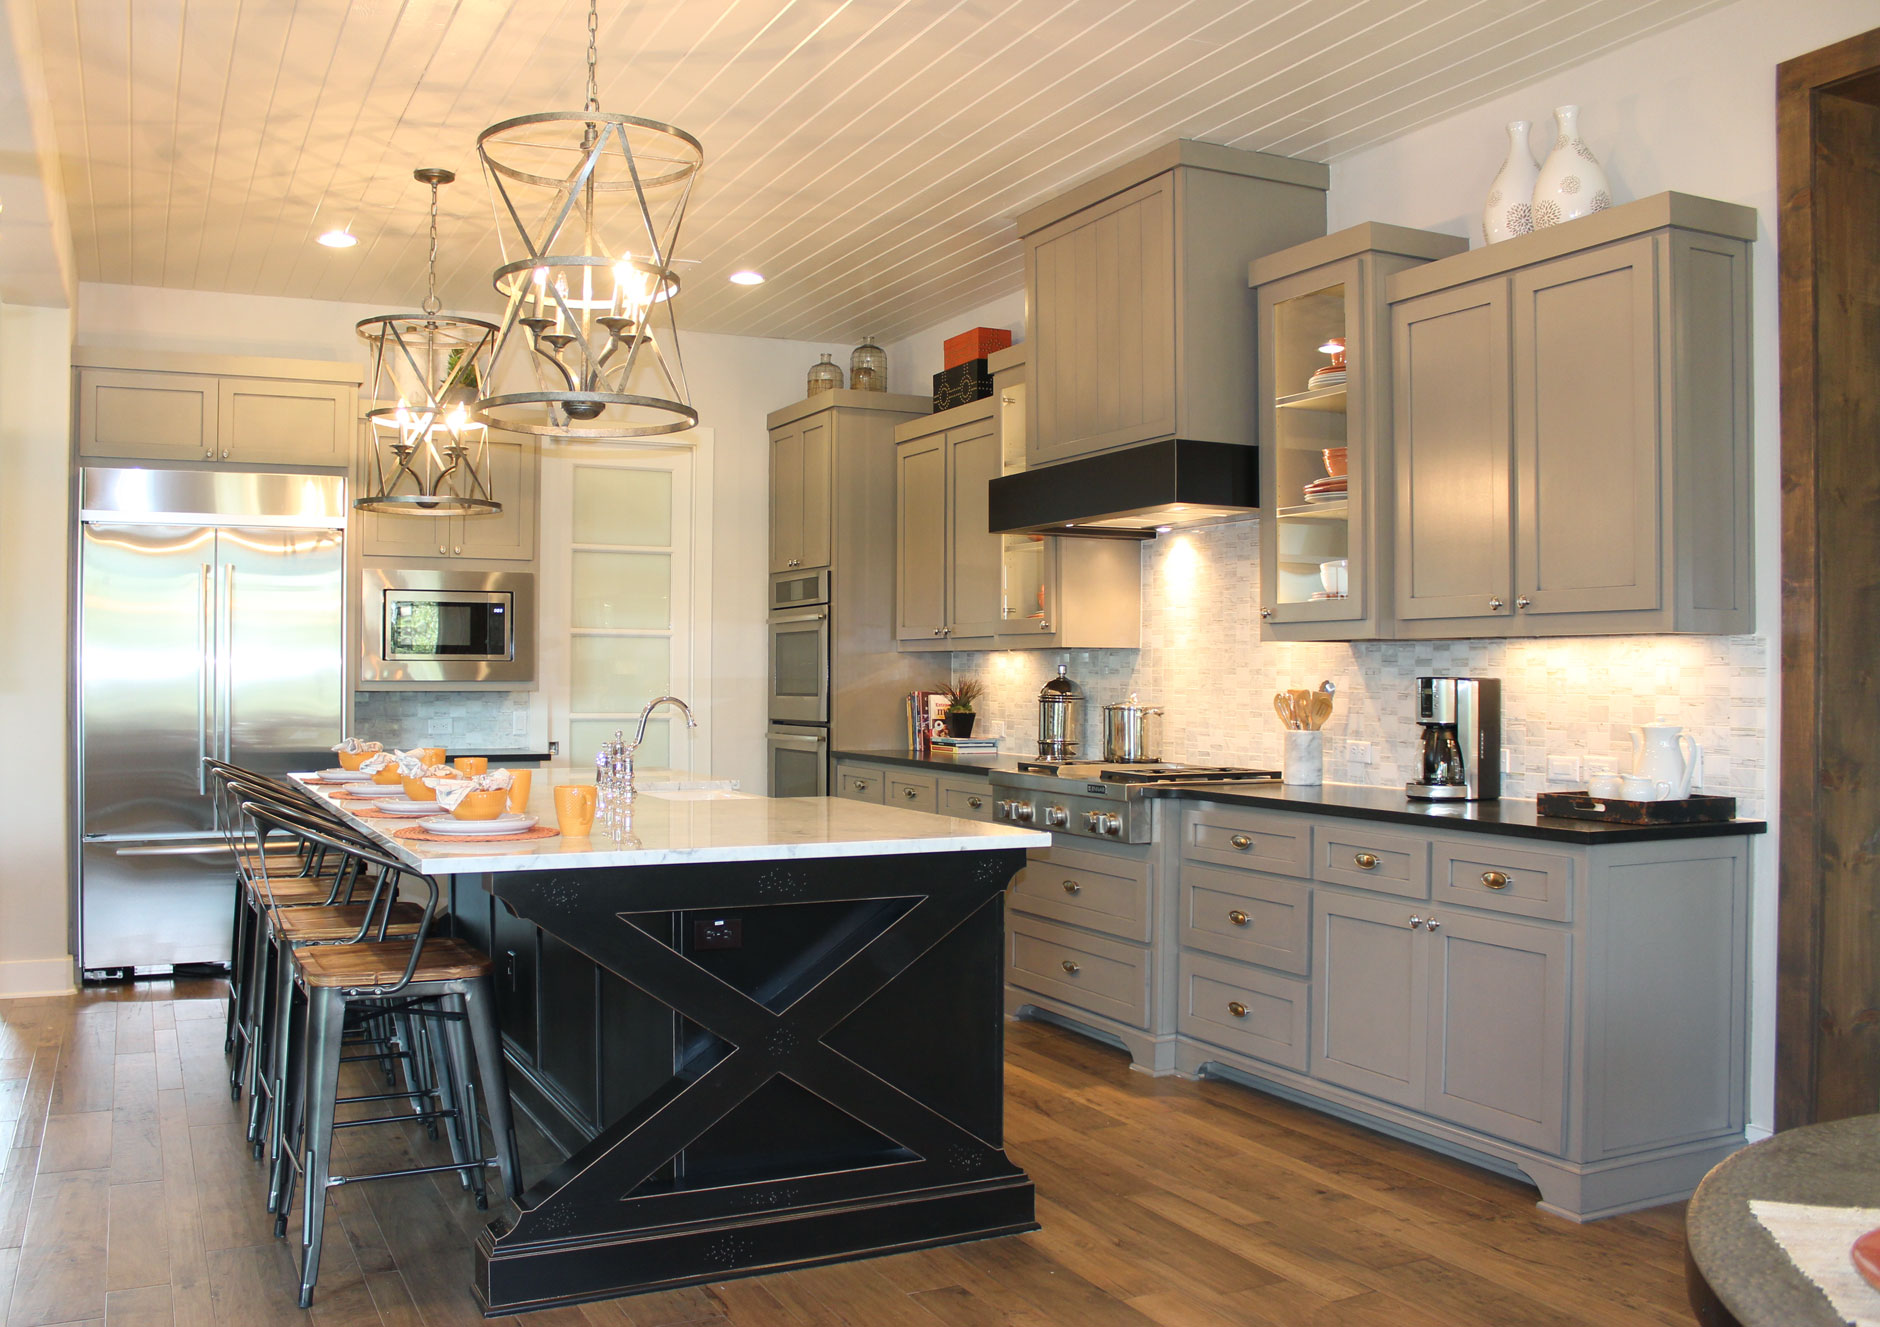 Burrows Cabinets kitchen with black island and gray wall cabinets and modern crown molding